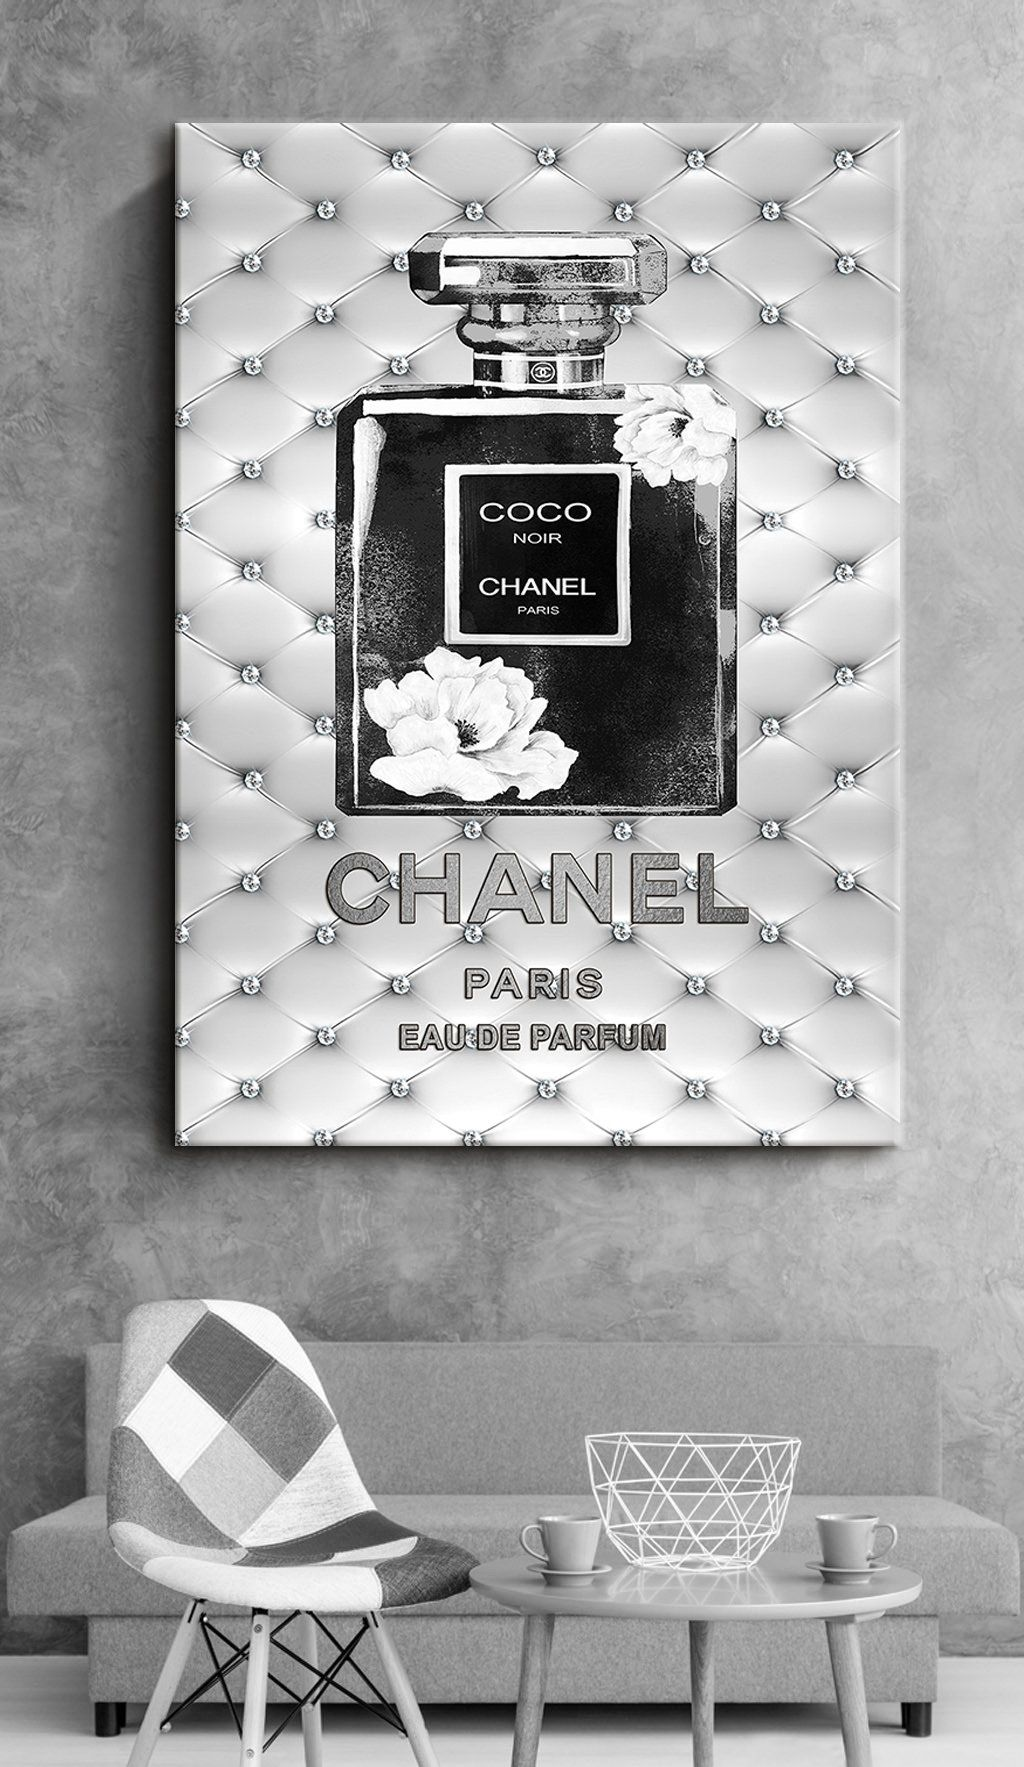 Fashion Wall Art Canvas Wall Art Chanel Perfume Prints Fashion Etsy Chanel Wall Art Fashion Wall Art Canvases Chanel Room